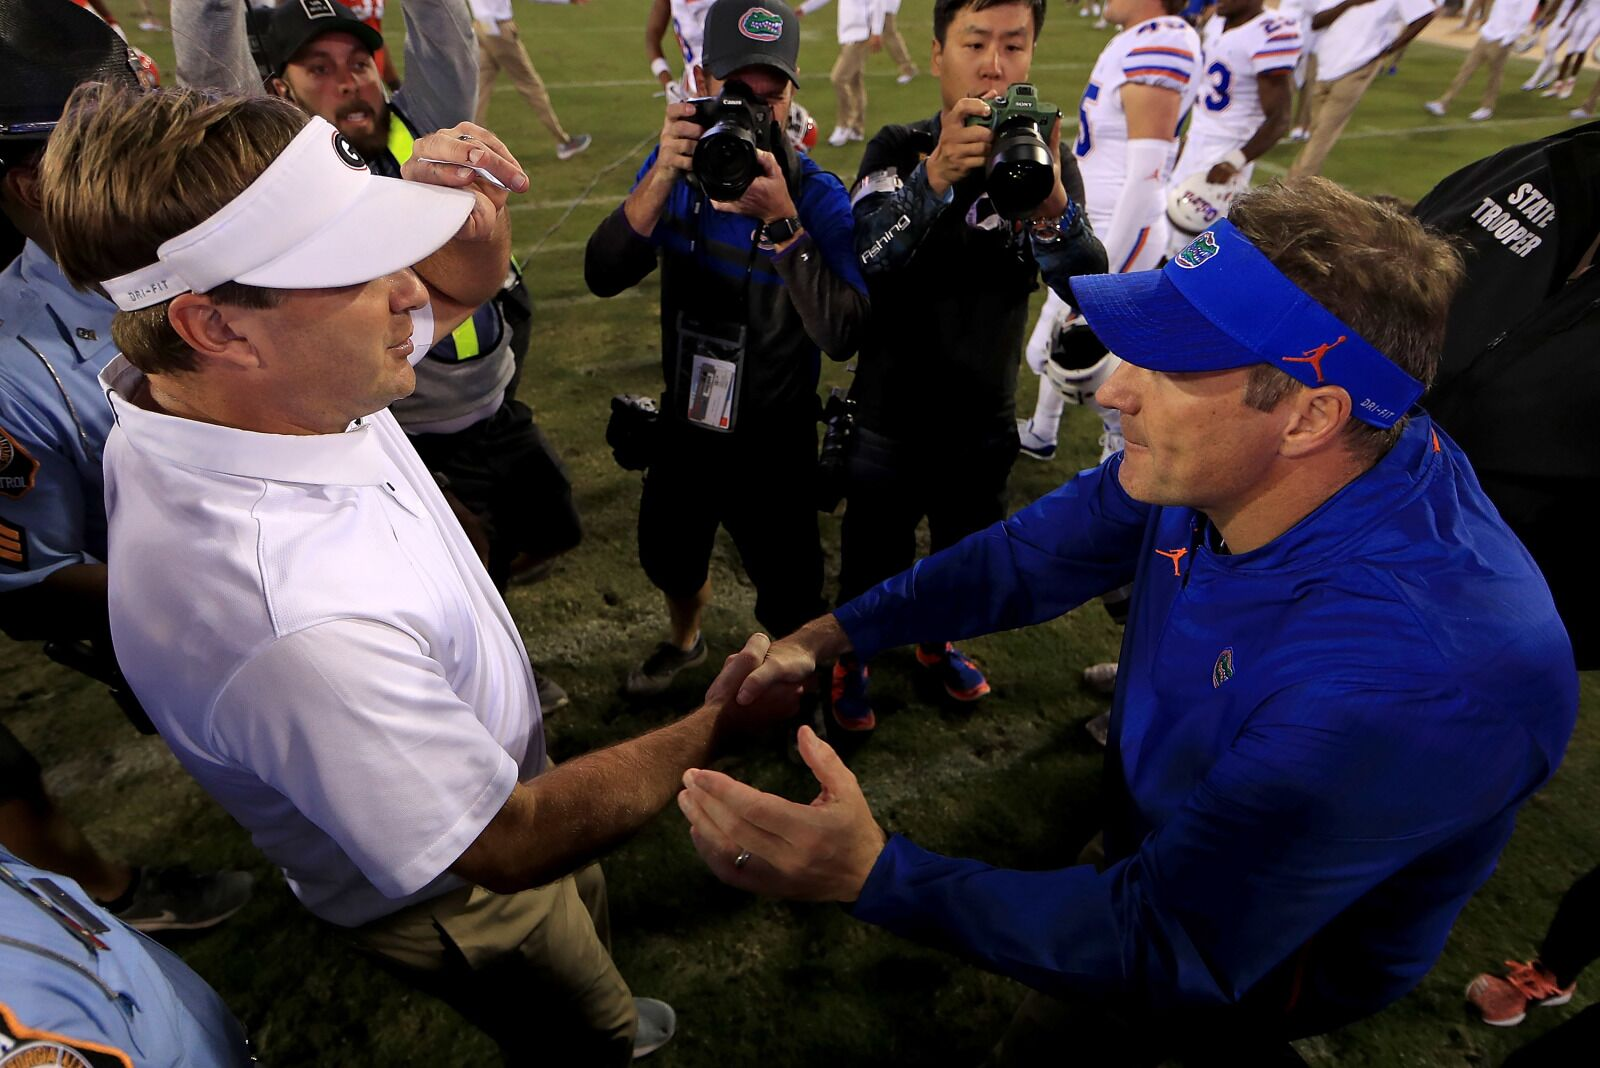 Florida football: How the 2019 opposing coaches have fared against the Gators